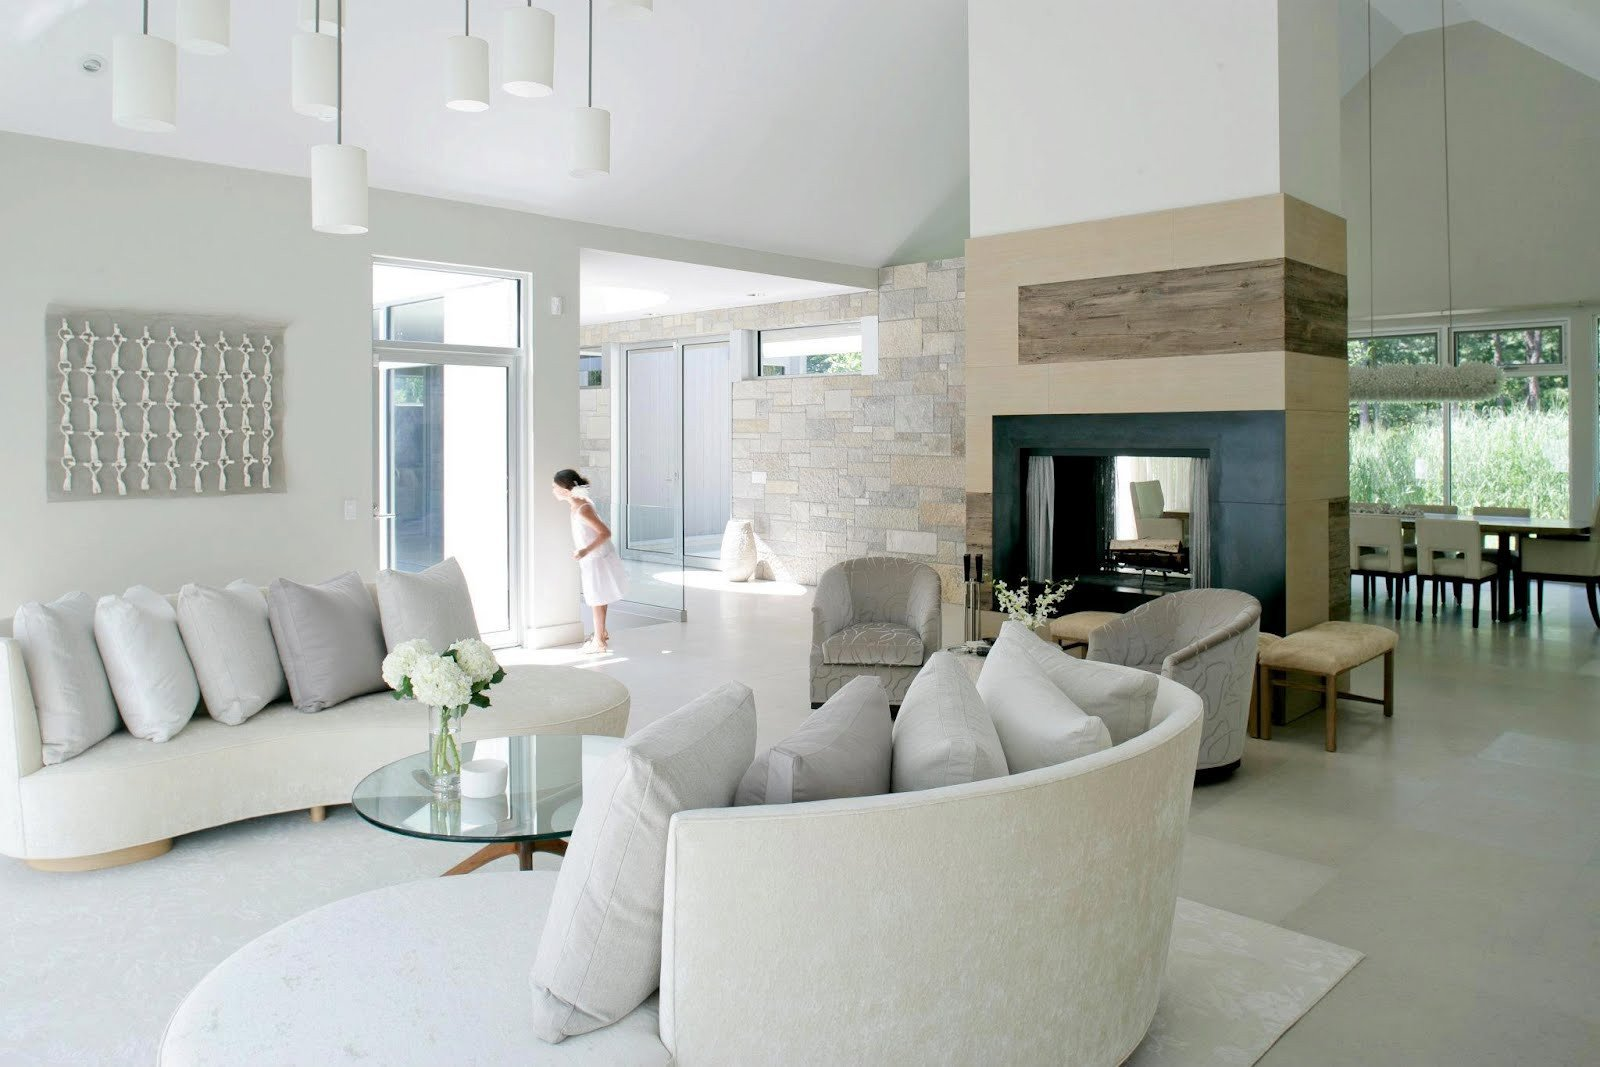 White Living Room Decor Ideas Unique Most Popular Living Room Designs for 2014 Qnud